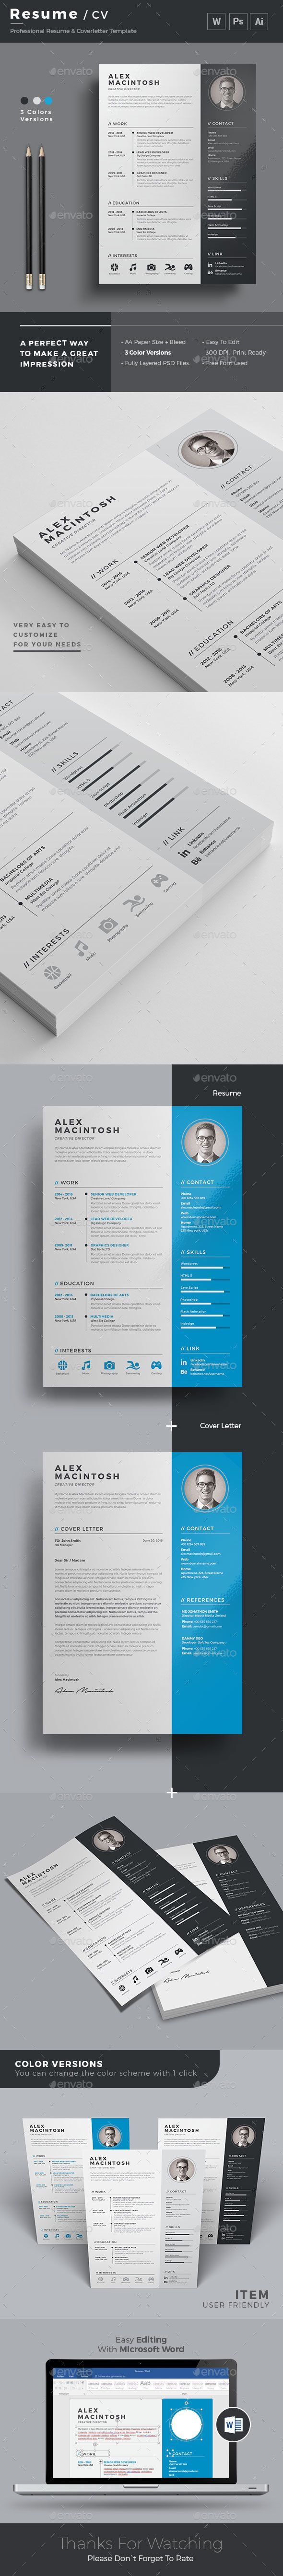 Word Cv Templates 2007%0A Resume Template PSD  MS Word  Download here  http   graphicriver